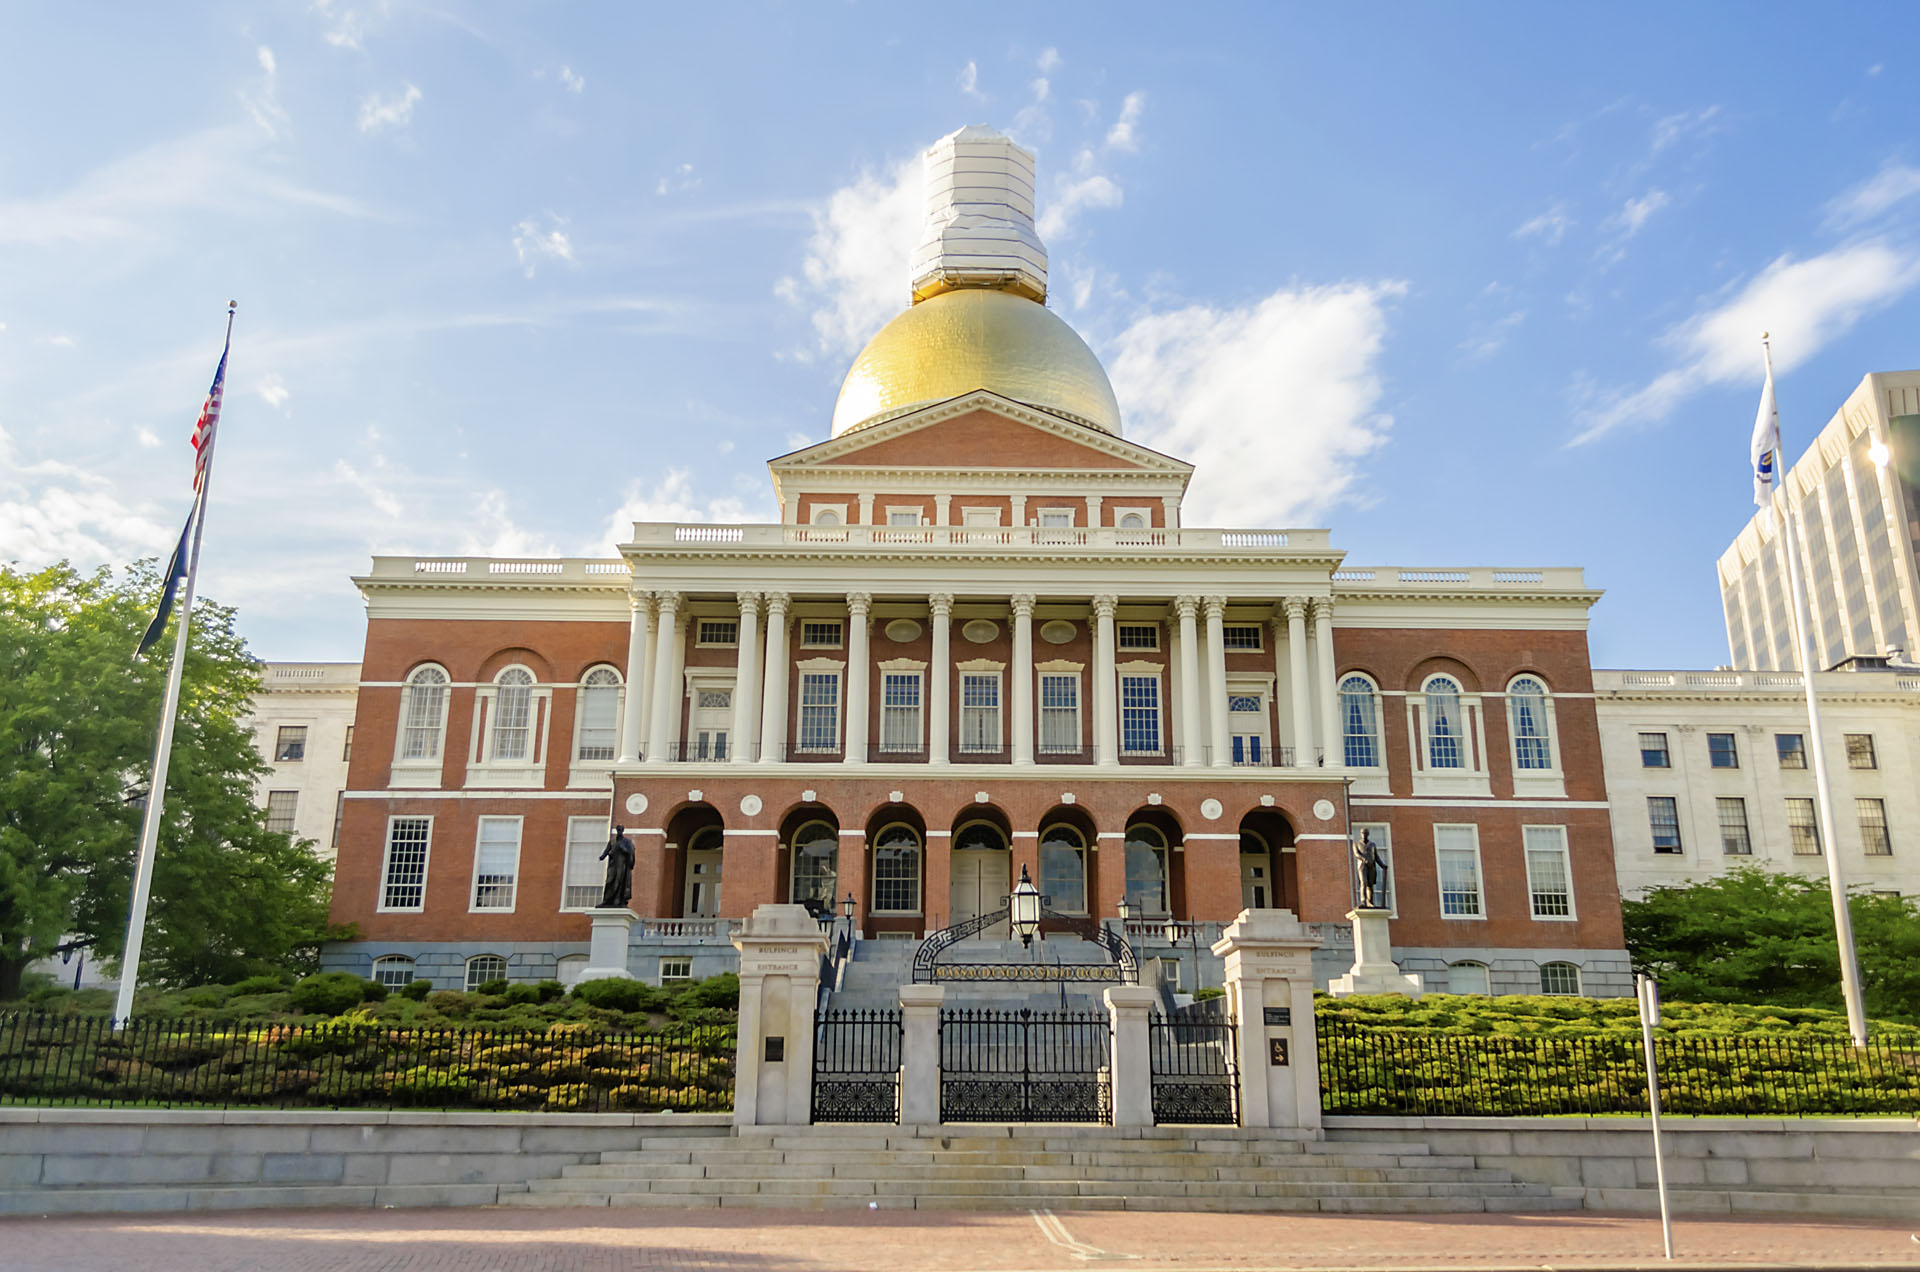 Massachusetts State House in Boston, USA